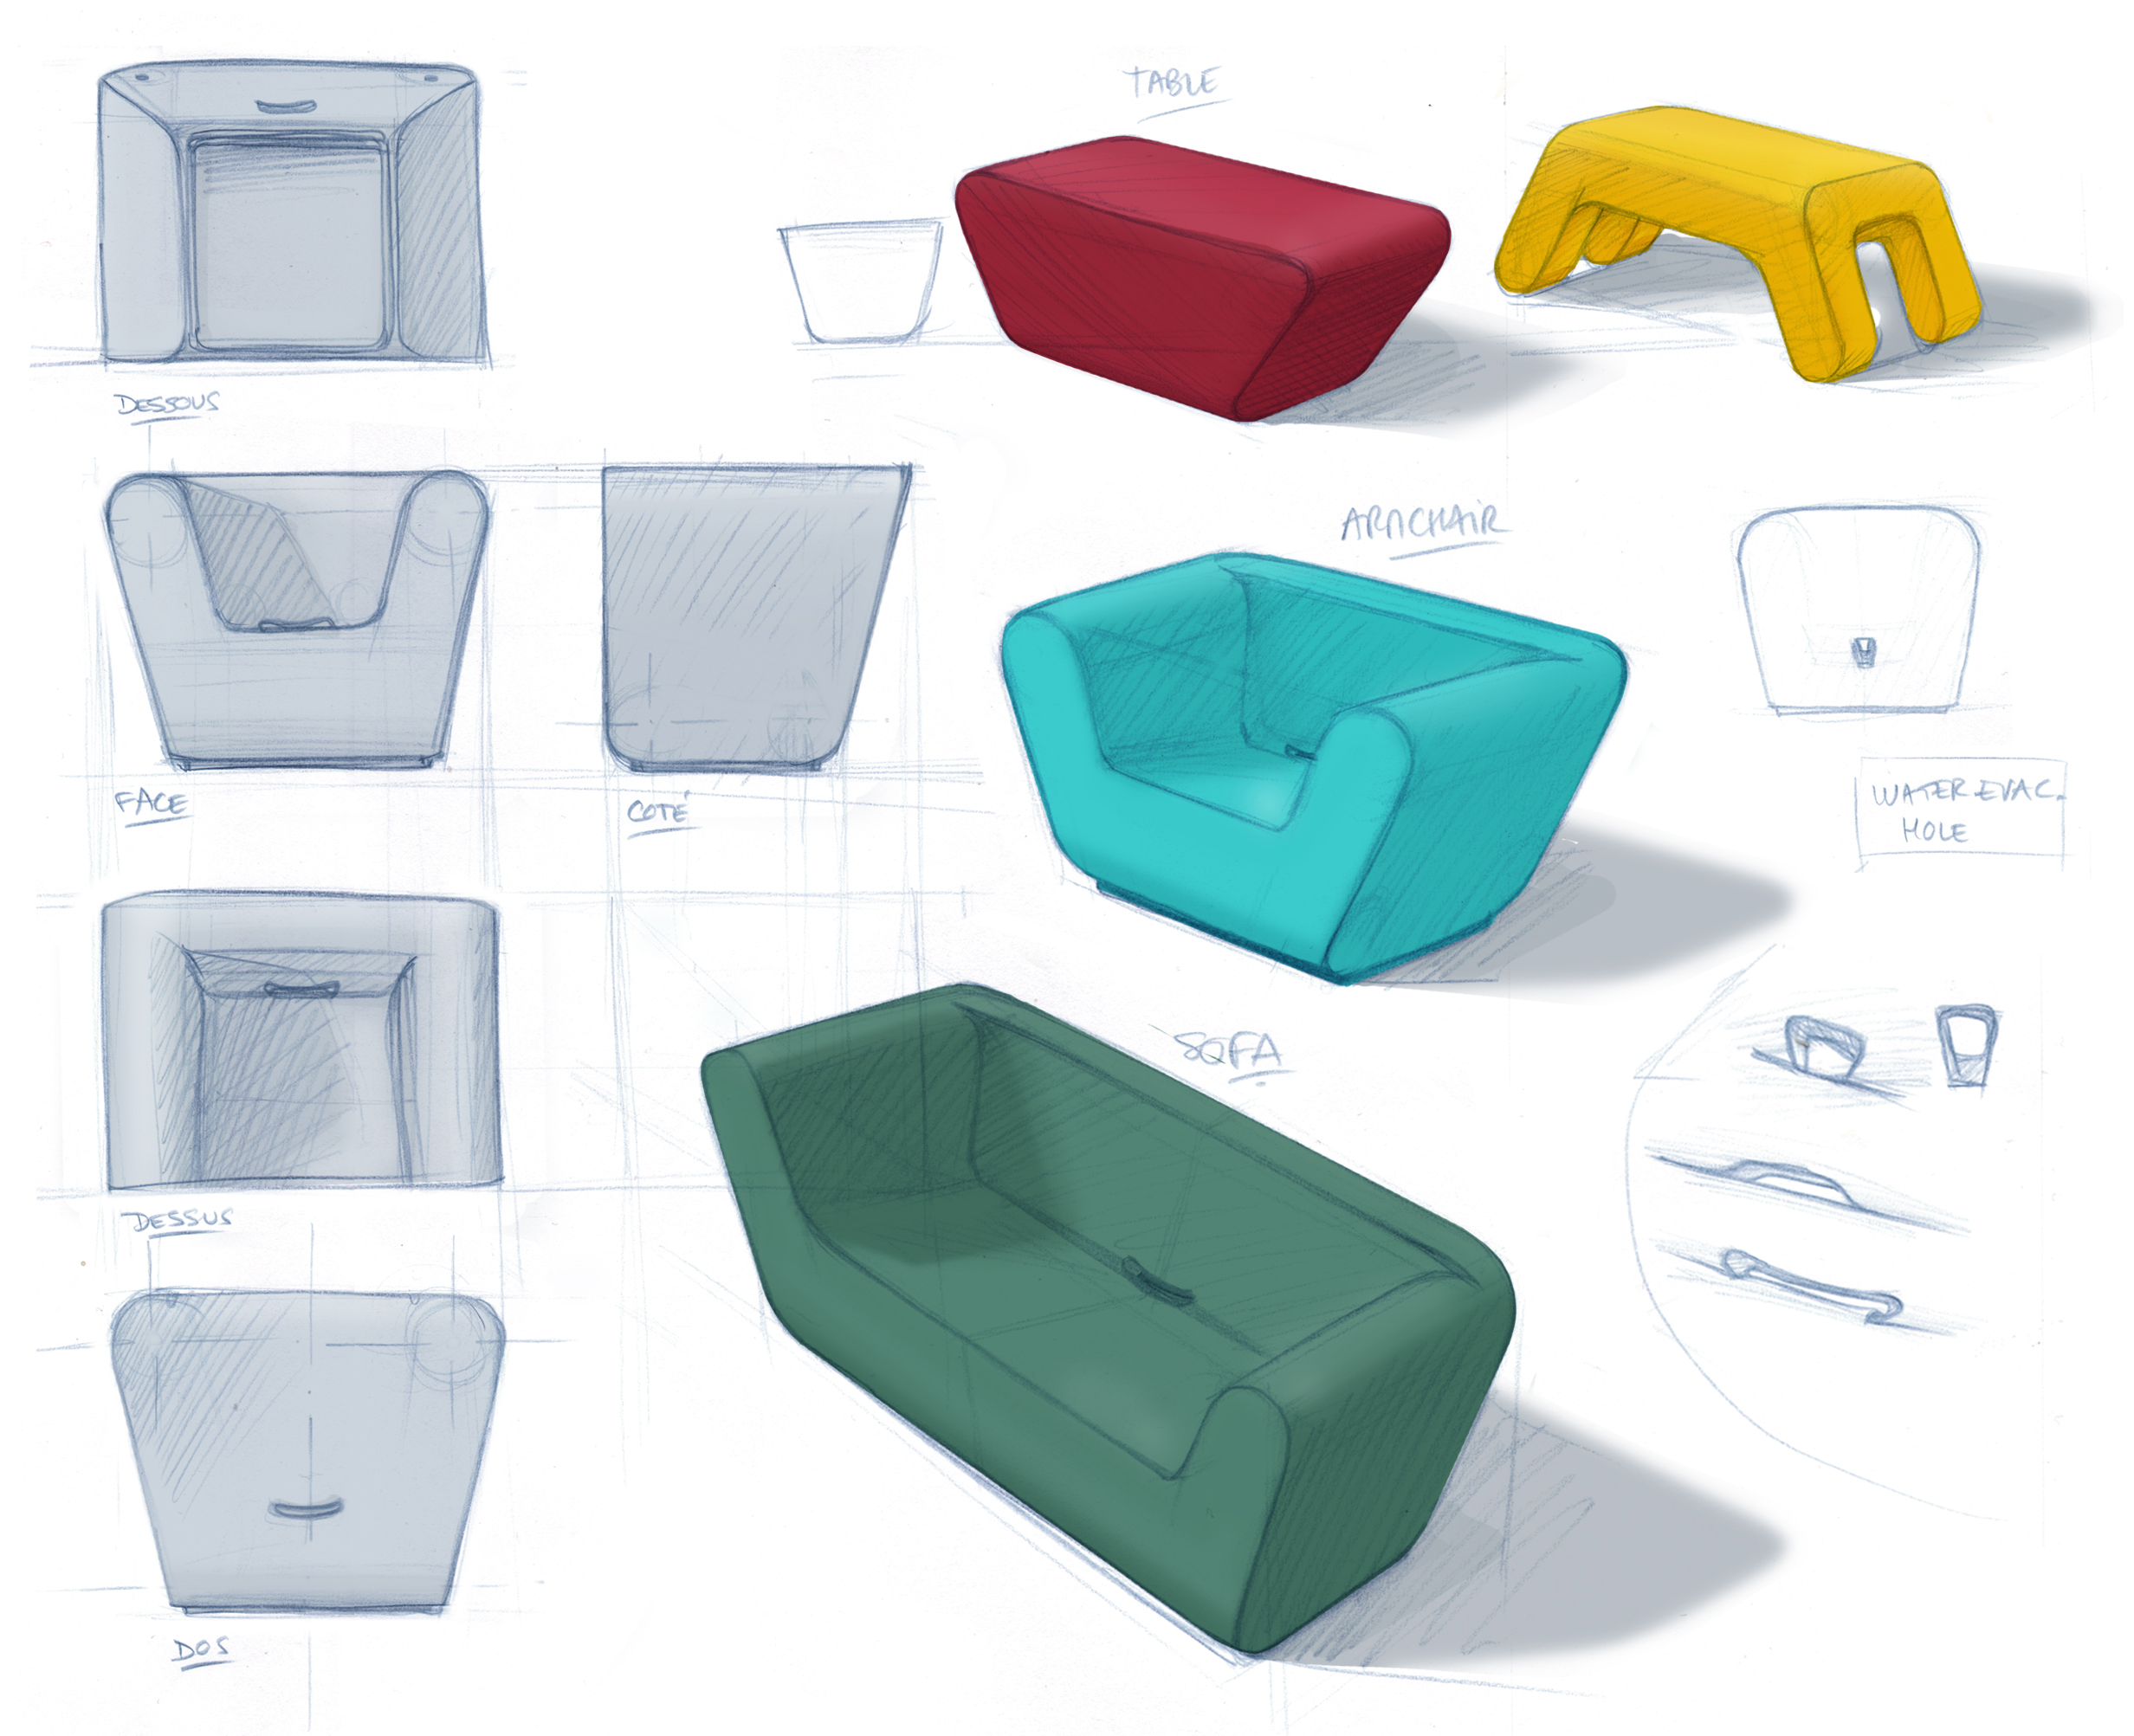 vincent-vedie-product-designer-outdoor_furniture_sketches